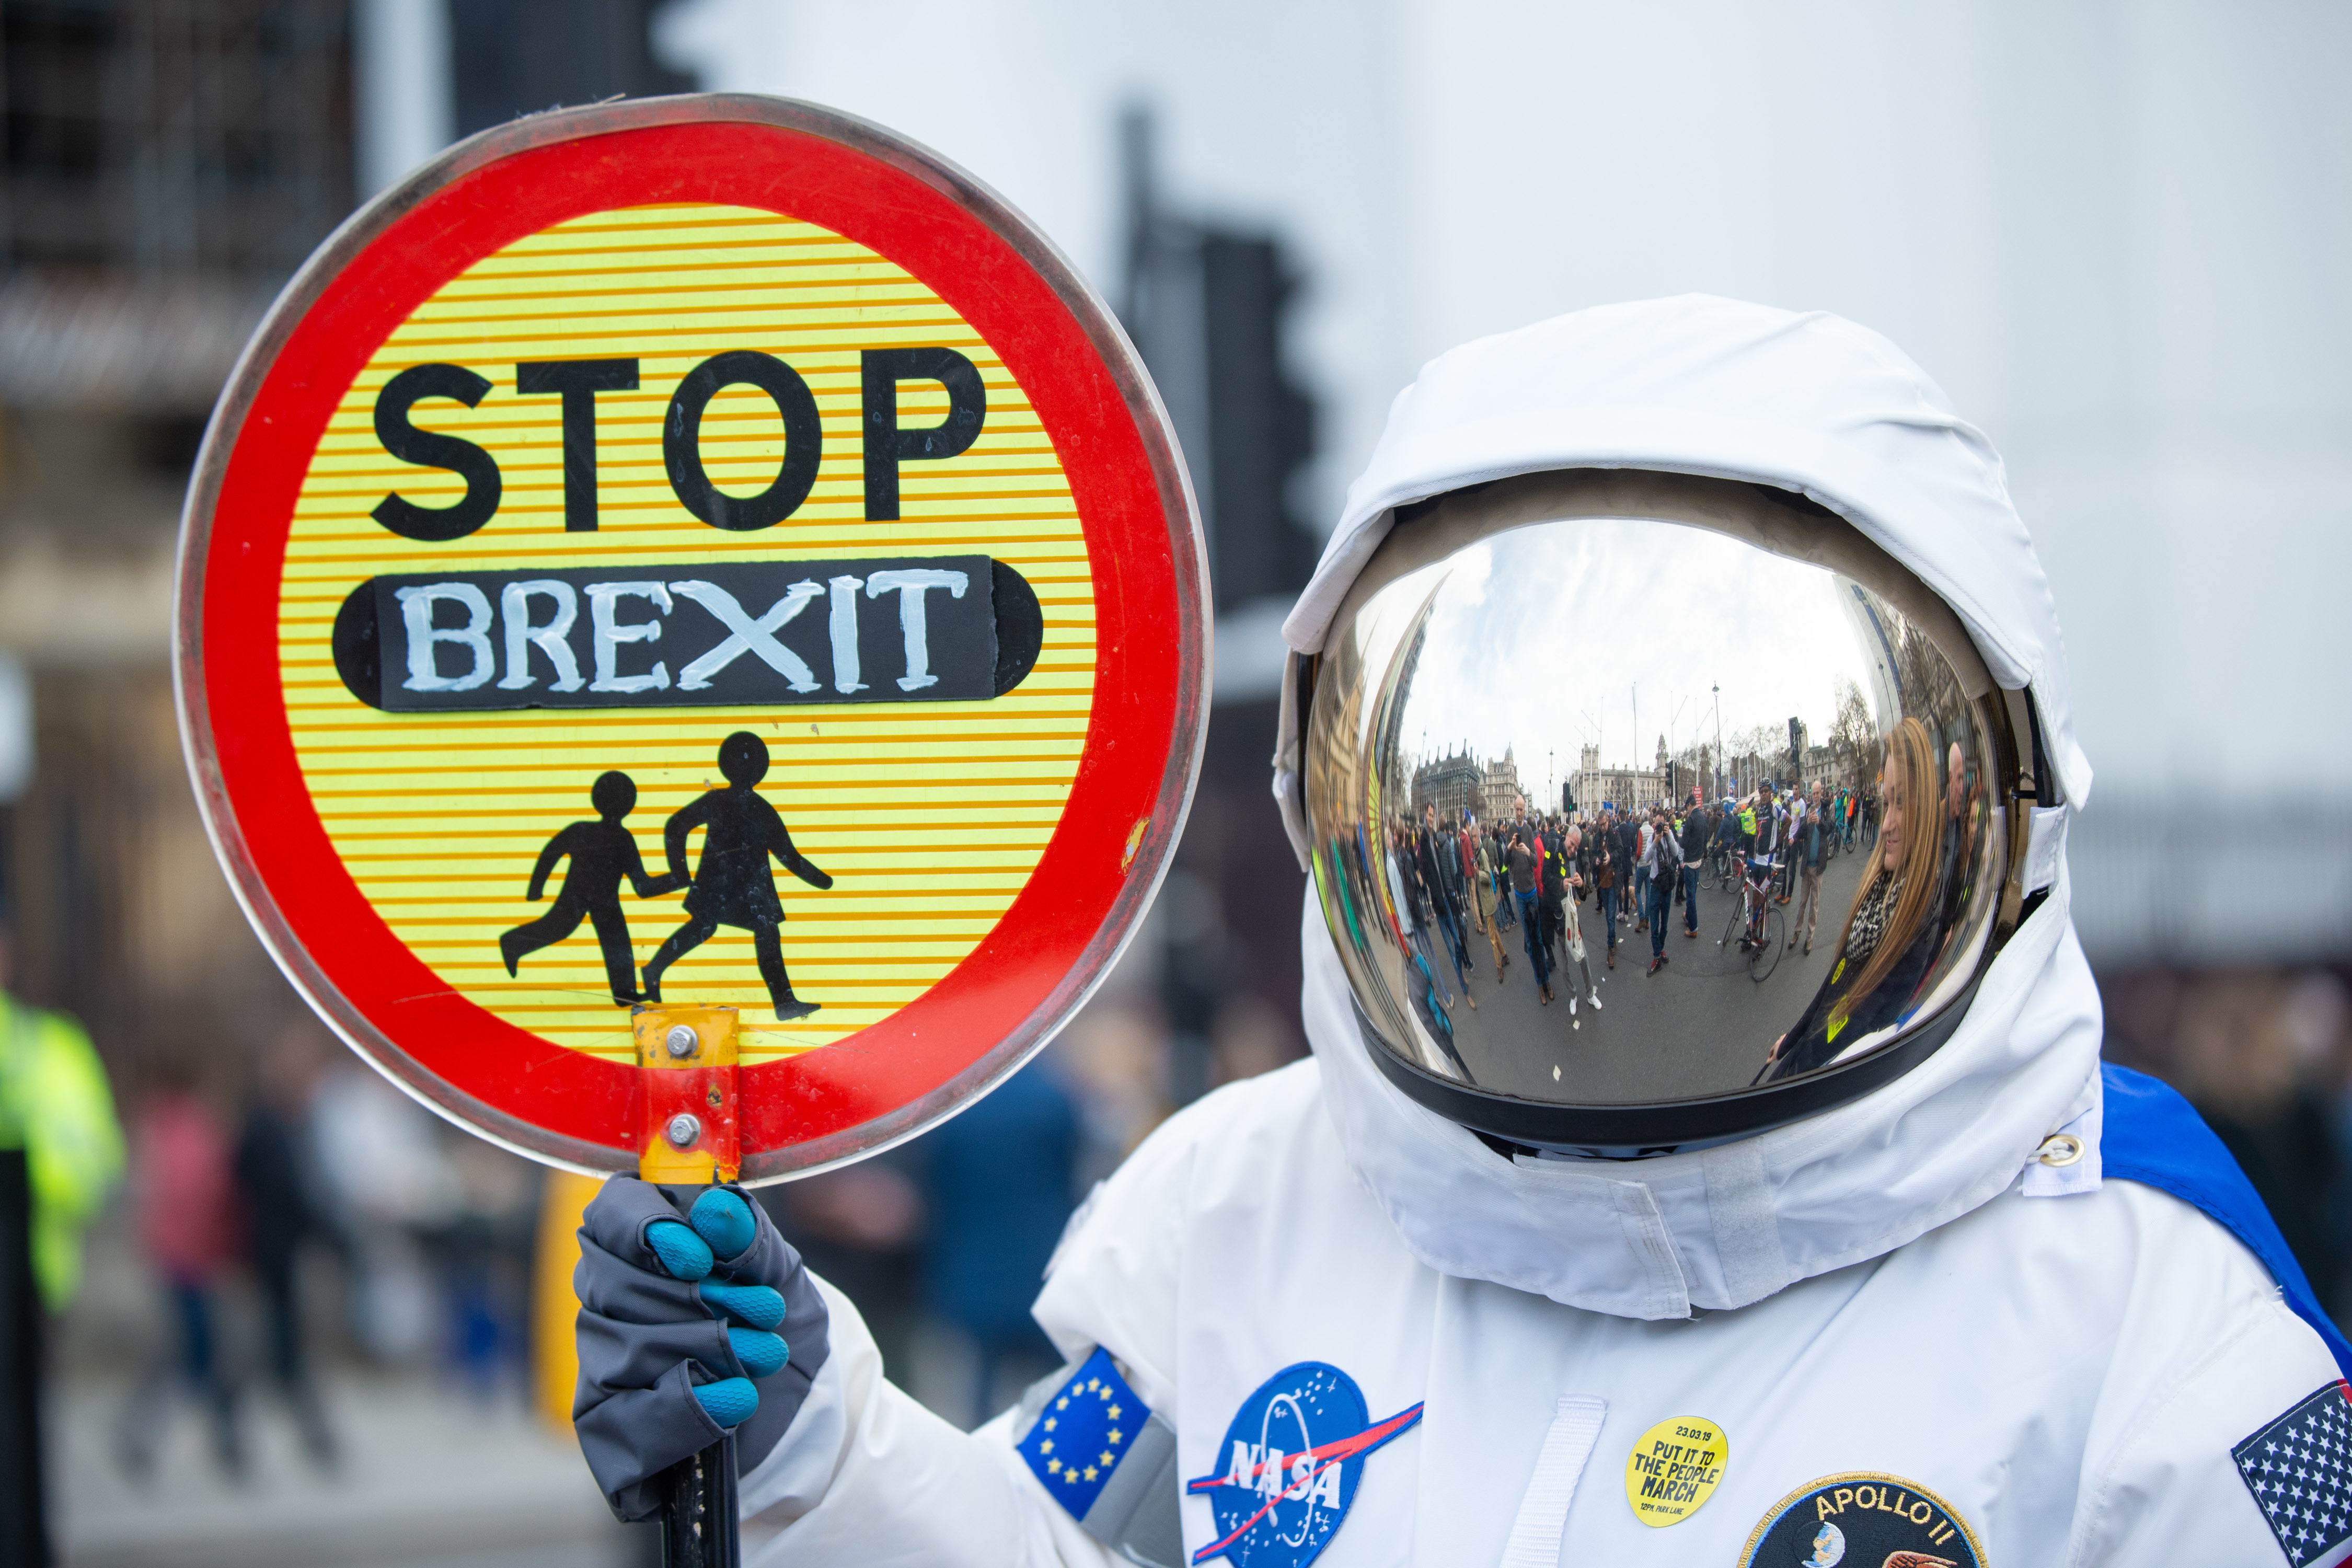 A protester in London this weekend. Credit: PA